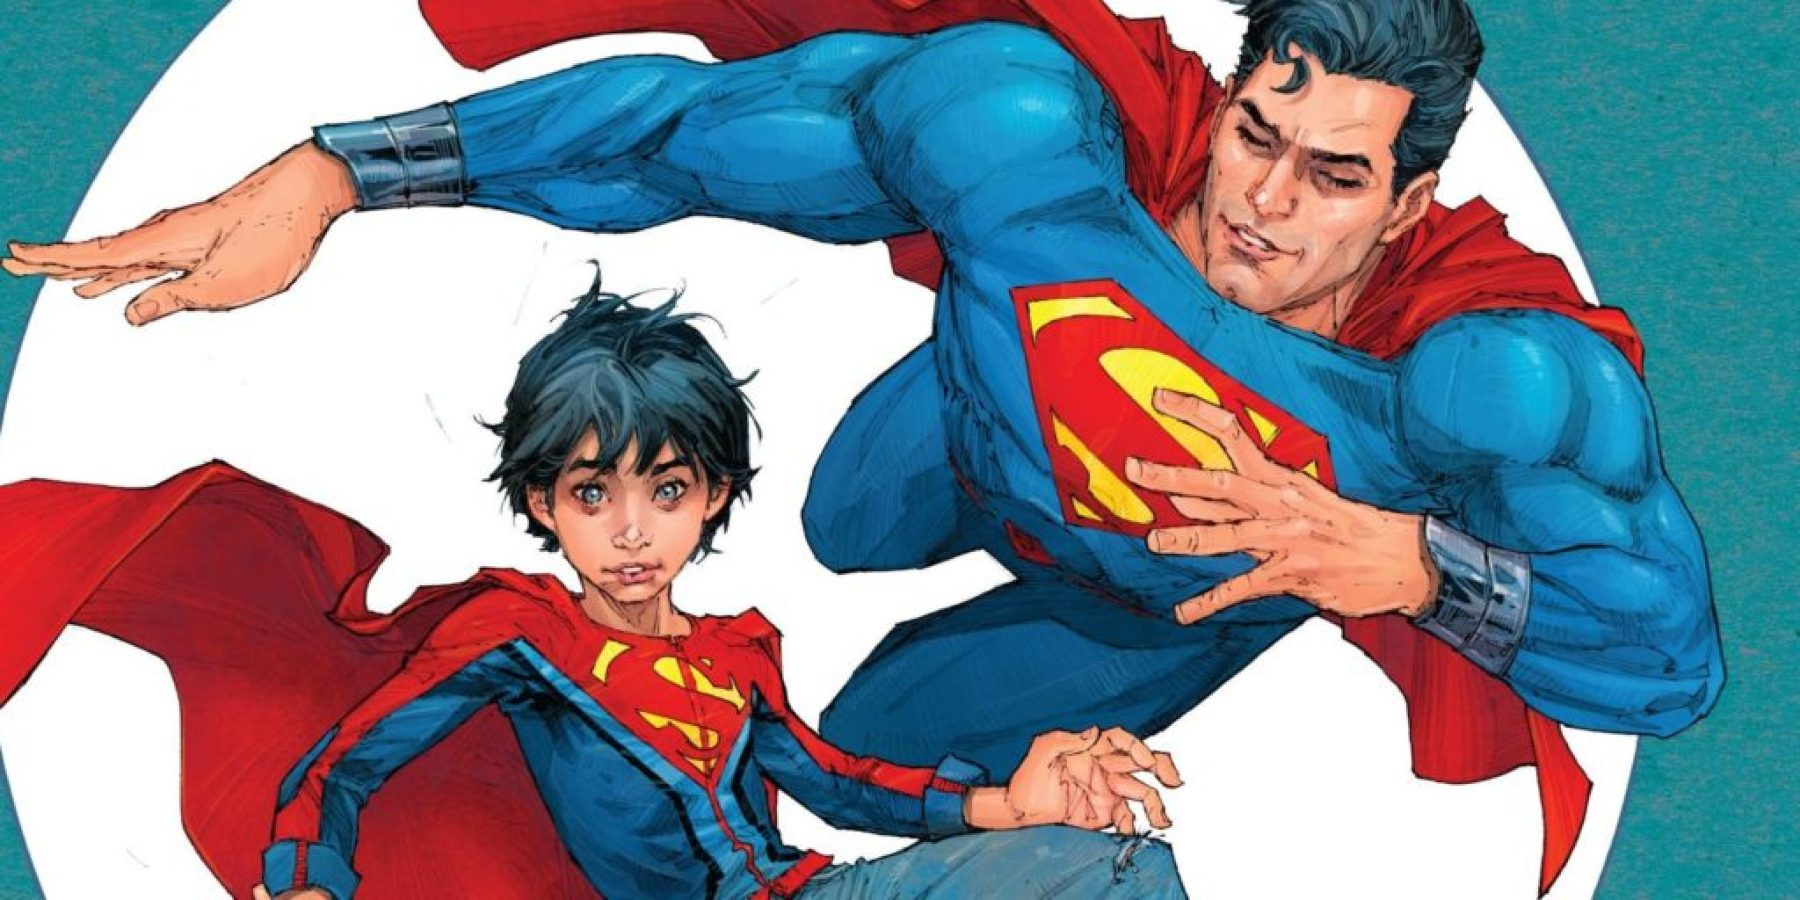 Superman and his son in DC Comics